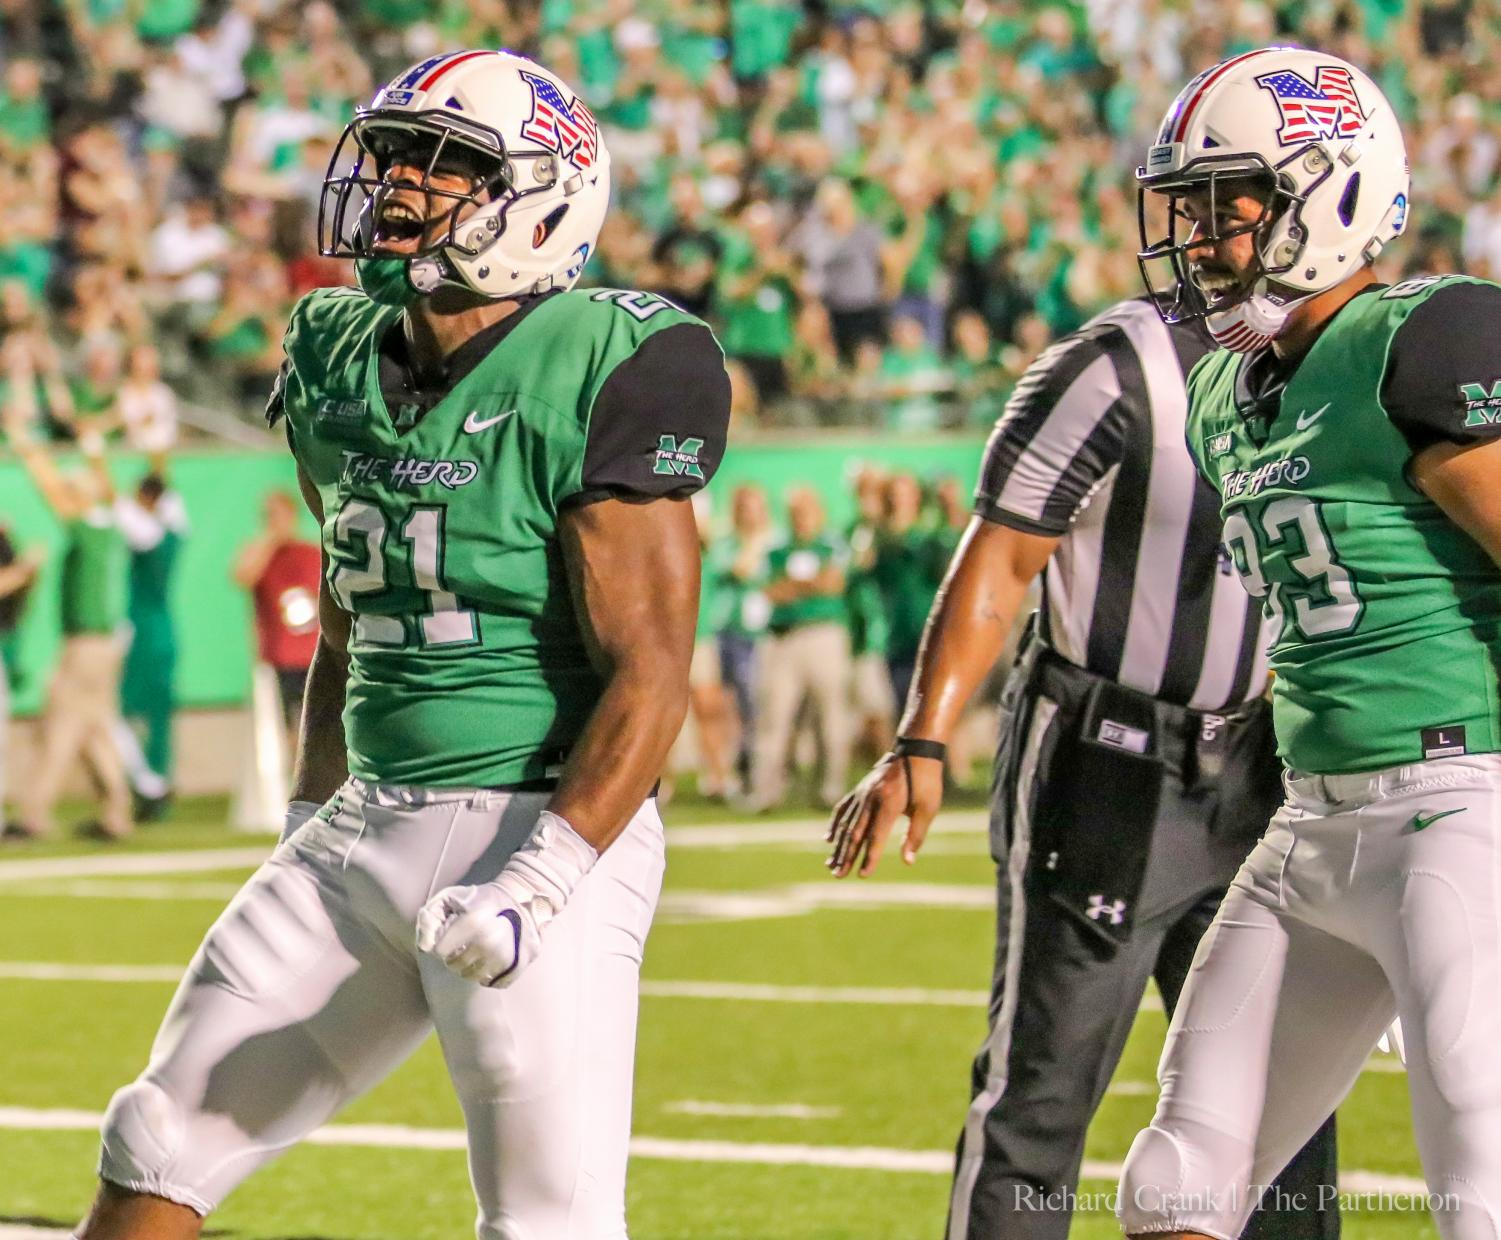 Anthony Anderson (21) celebrates his 1-yard touchdown run during the second quarter of Marshall's loss to Middle Tennessee.